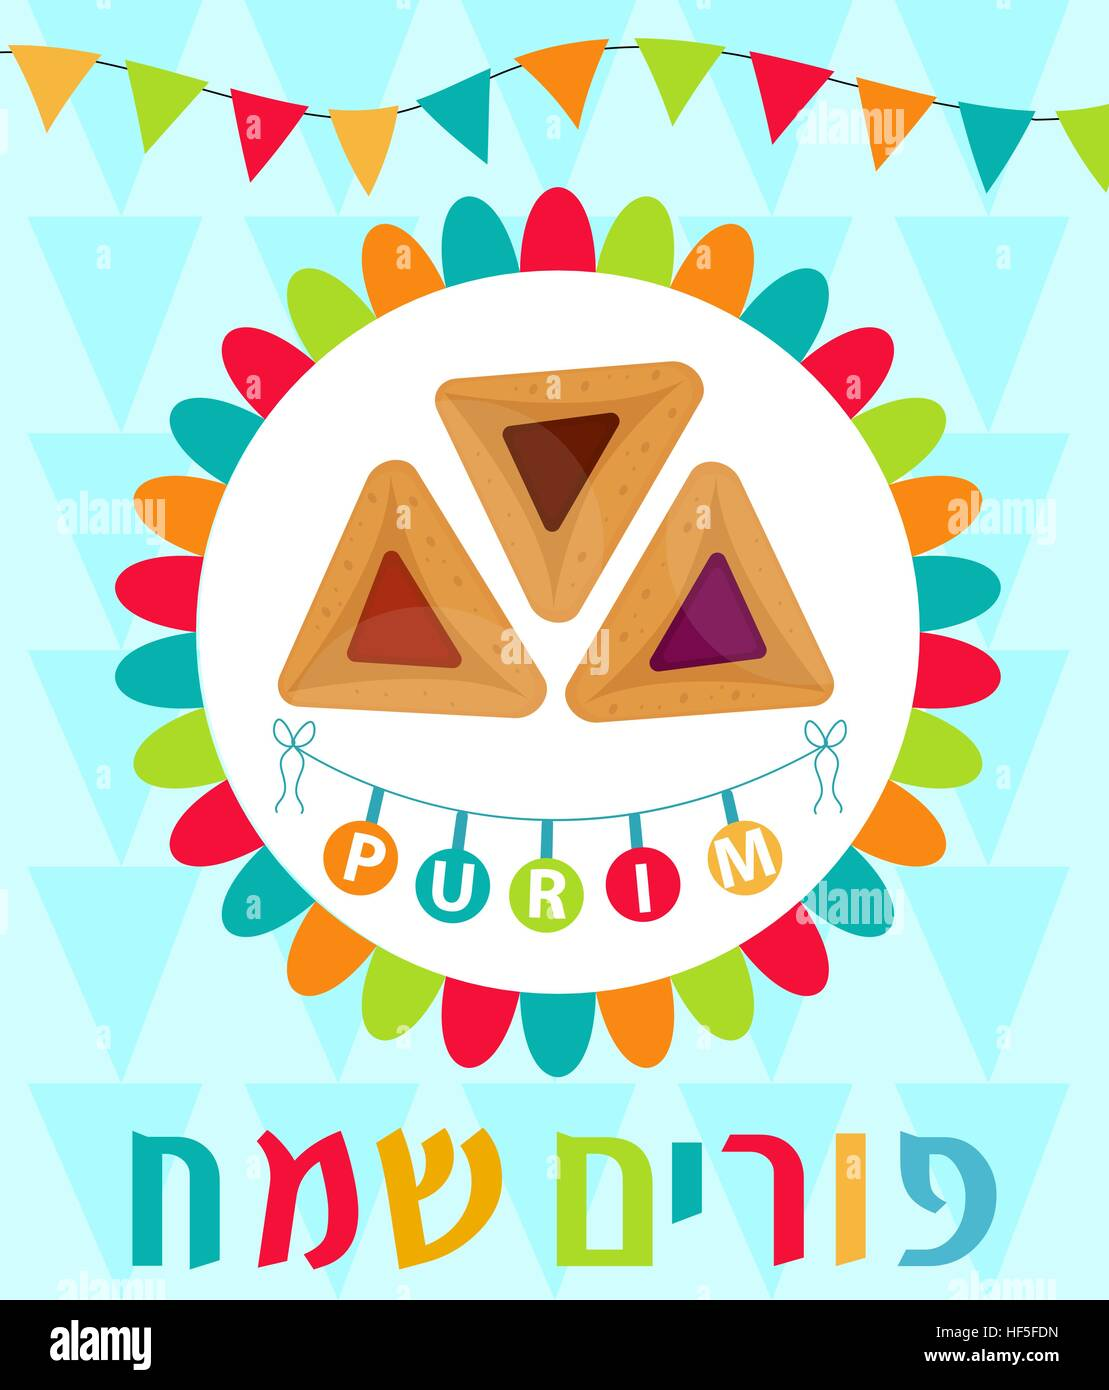 Happy purim template greeting card poster flyer frame for text happy purim template greeting card poster flyer frame for text jewish holiday carnival vector illustration m4hsunfo